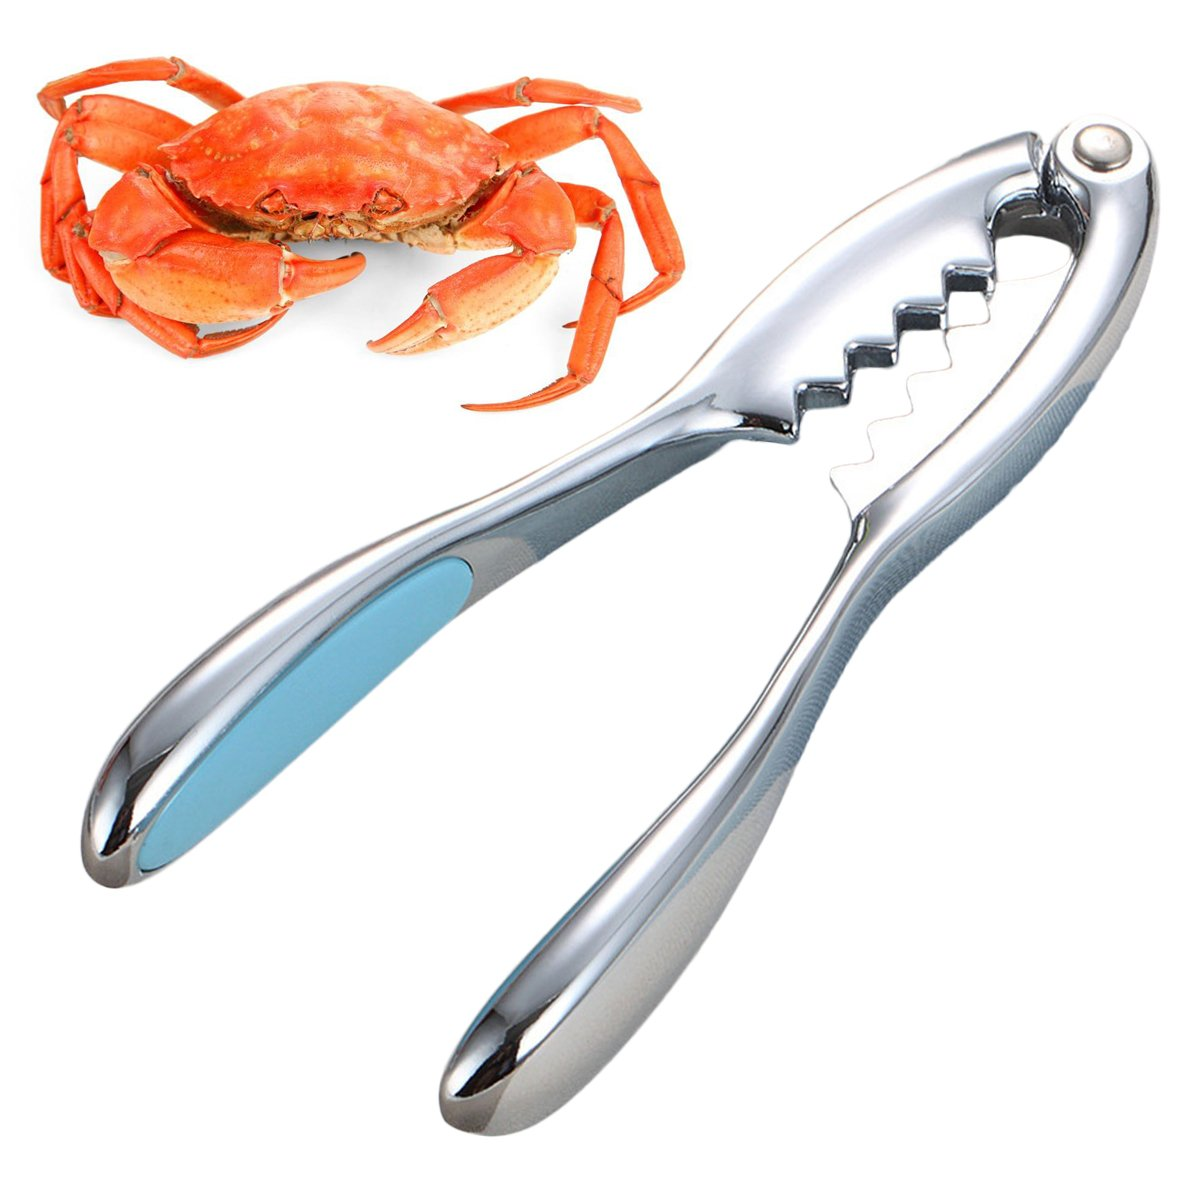 Justdolife Crab Cracker Crab Tool Seafood Tool Multifunctional Professional Nut Cracker for Lobster Crab Nut